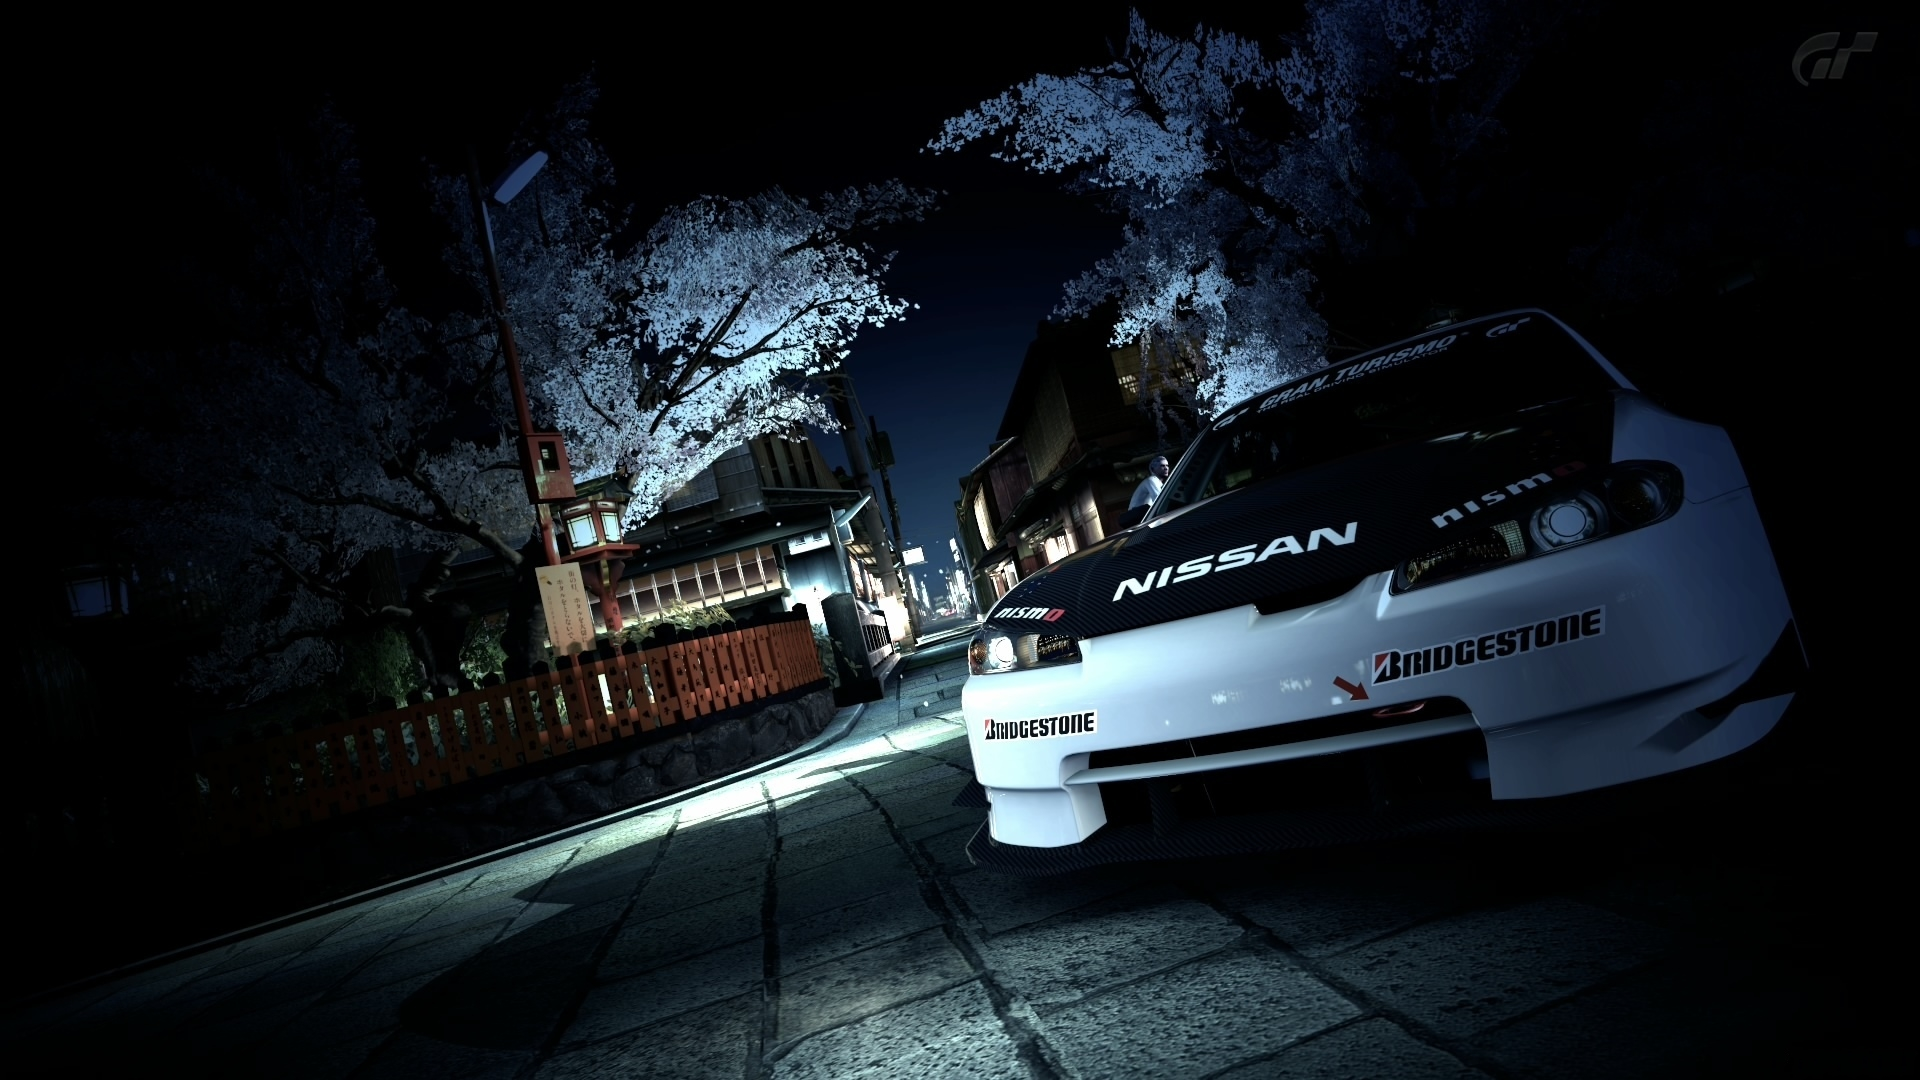 Vehicles - Nissan Wallpaper